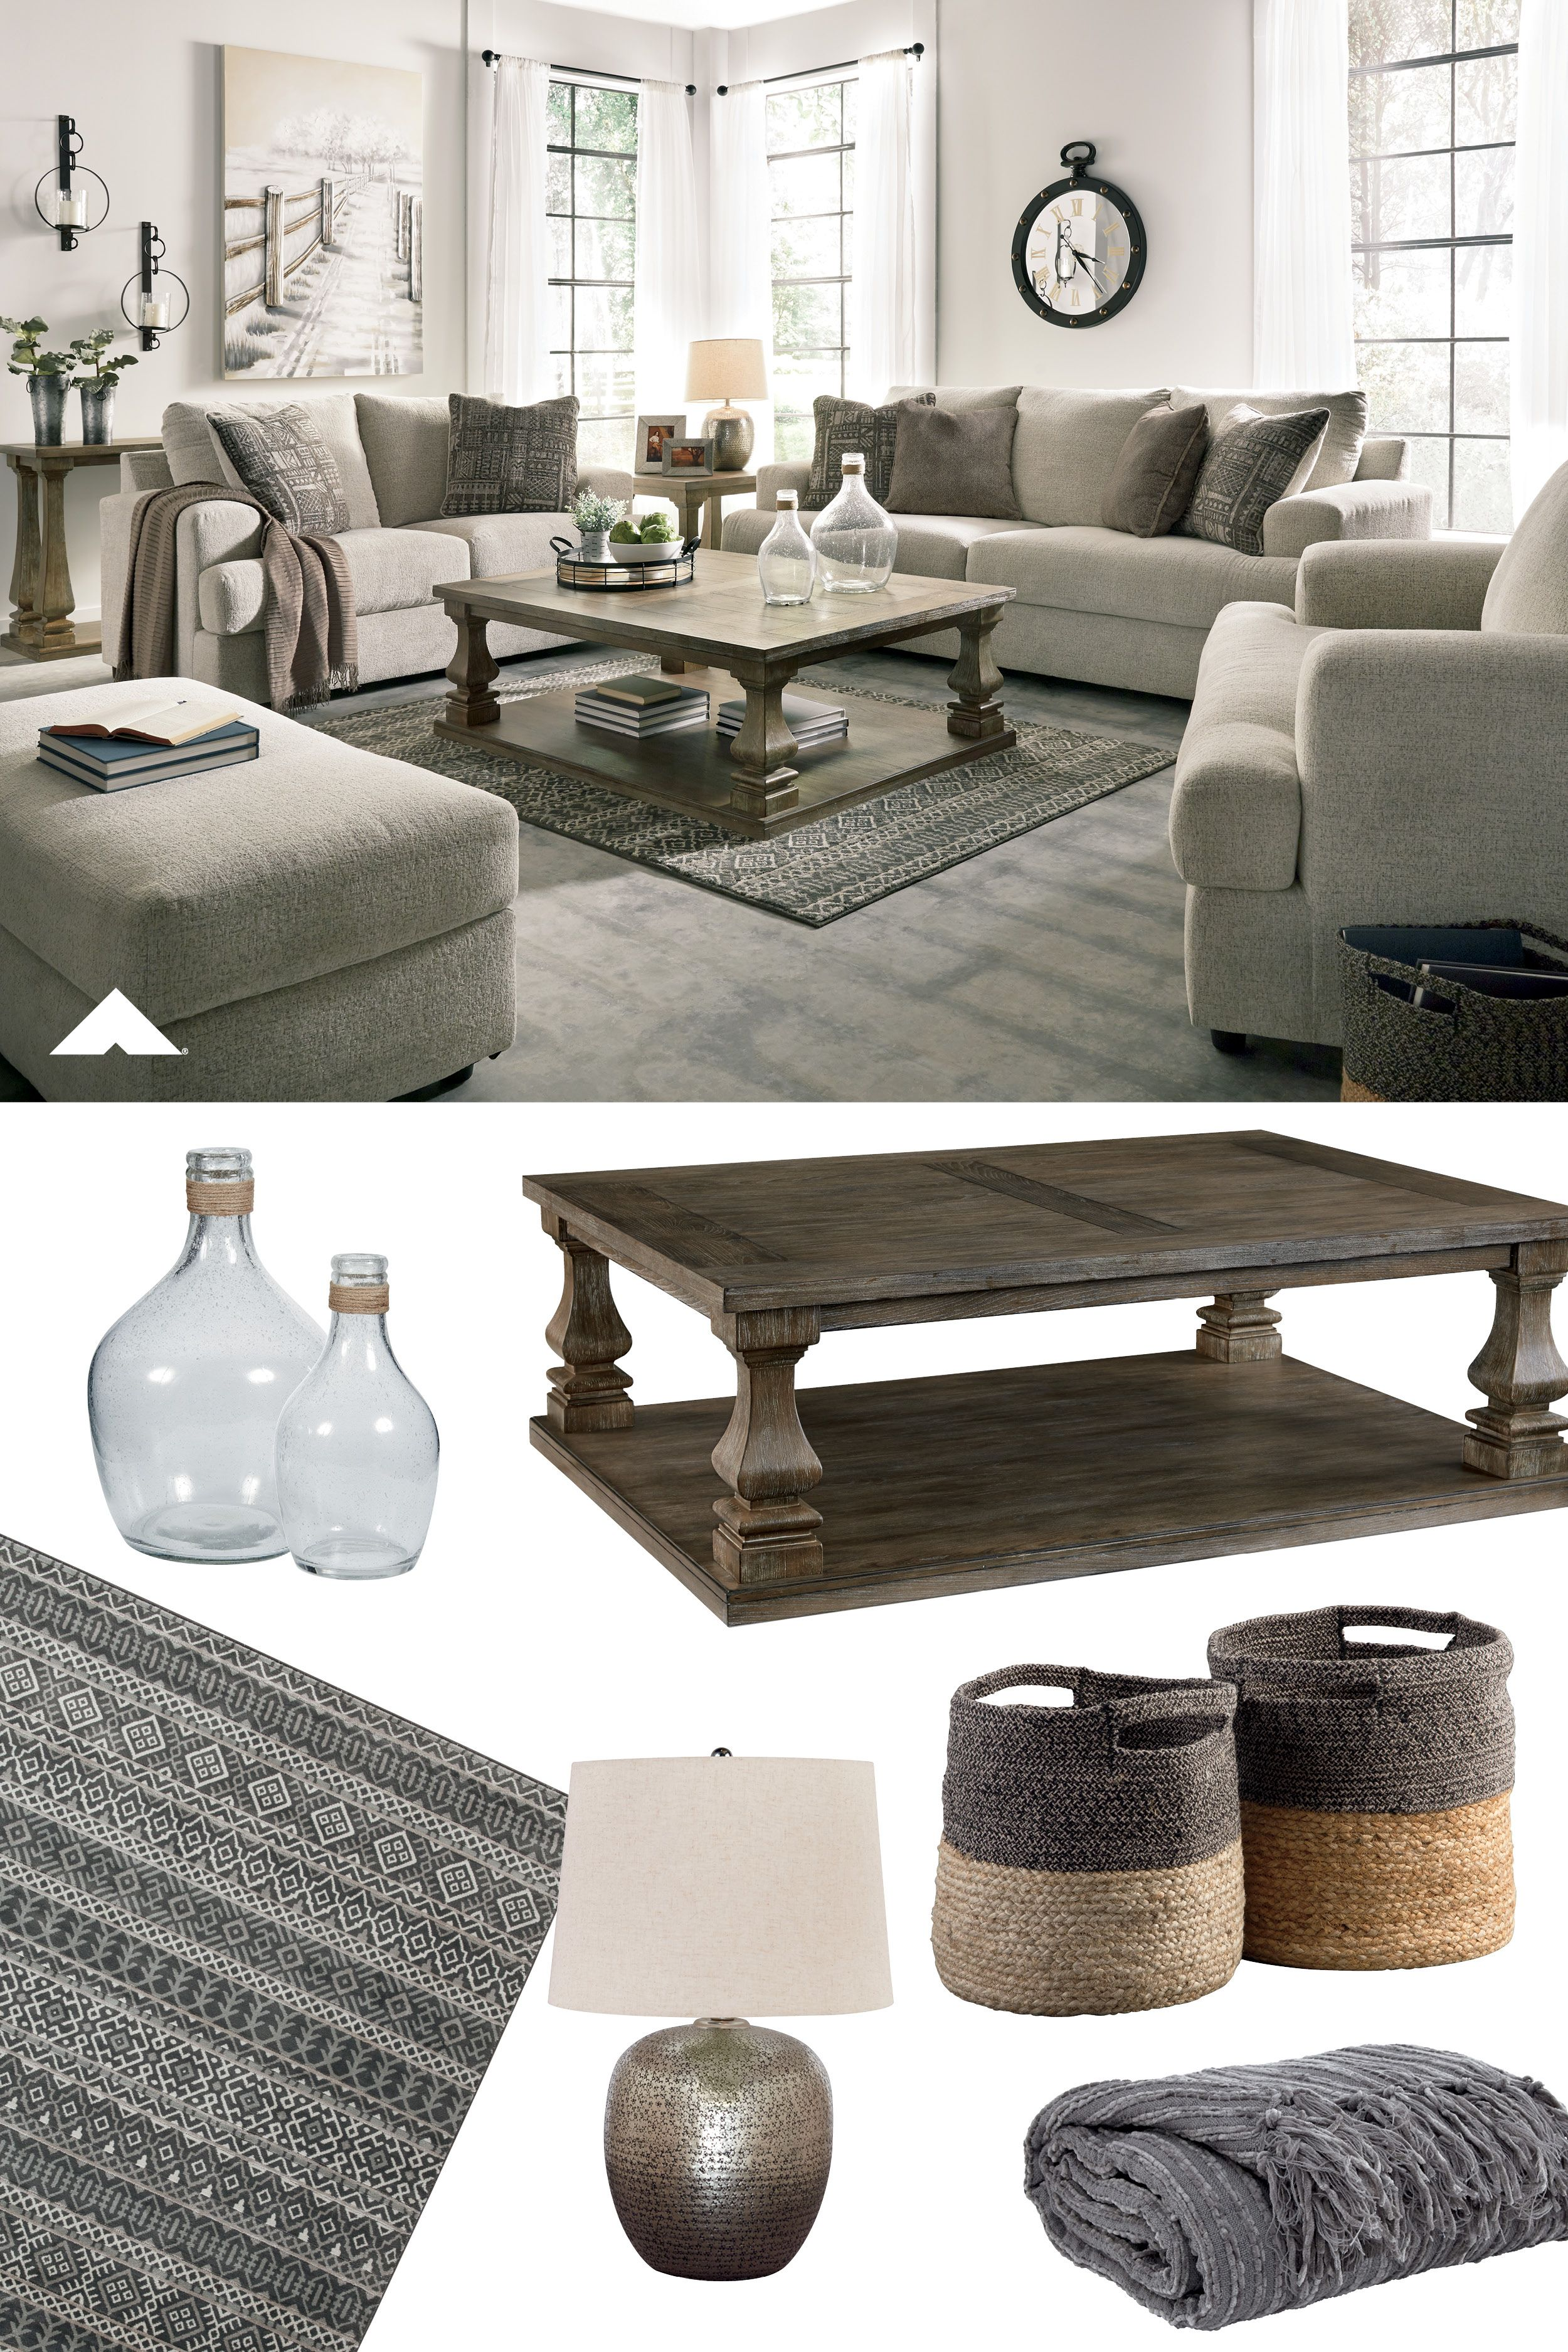 Soletren Stone Living Room Group Flaunting A Trendsetting Silhouette The Soletren Sofa Puts The Contemporary In Y Living Room Living Room Decor Deep Seating